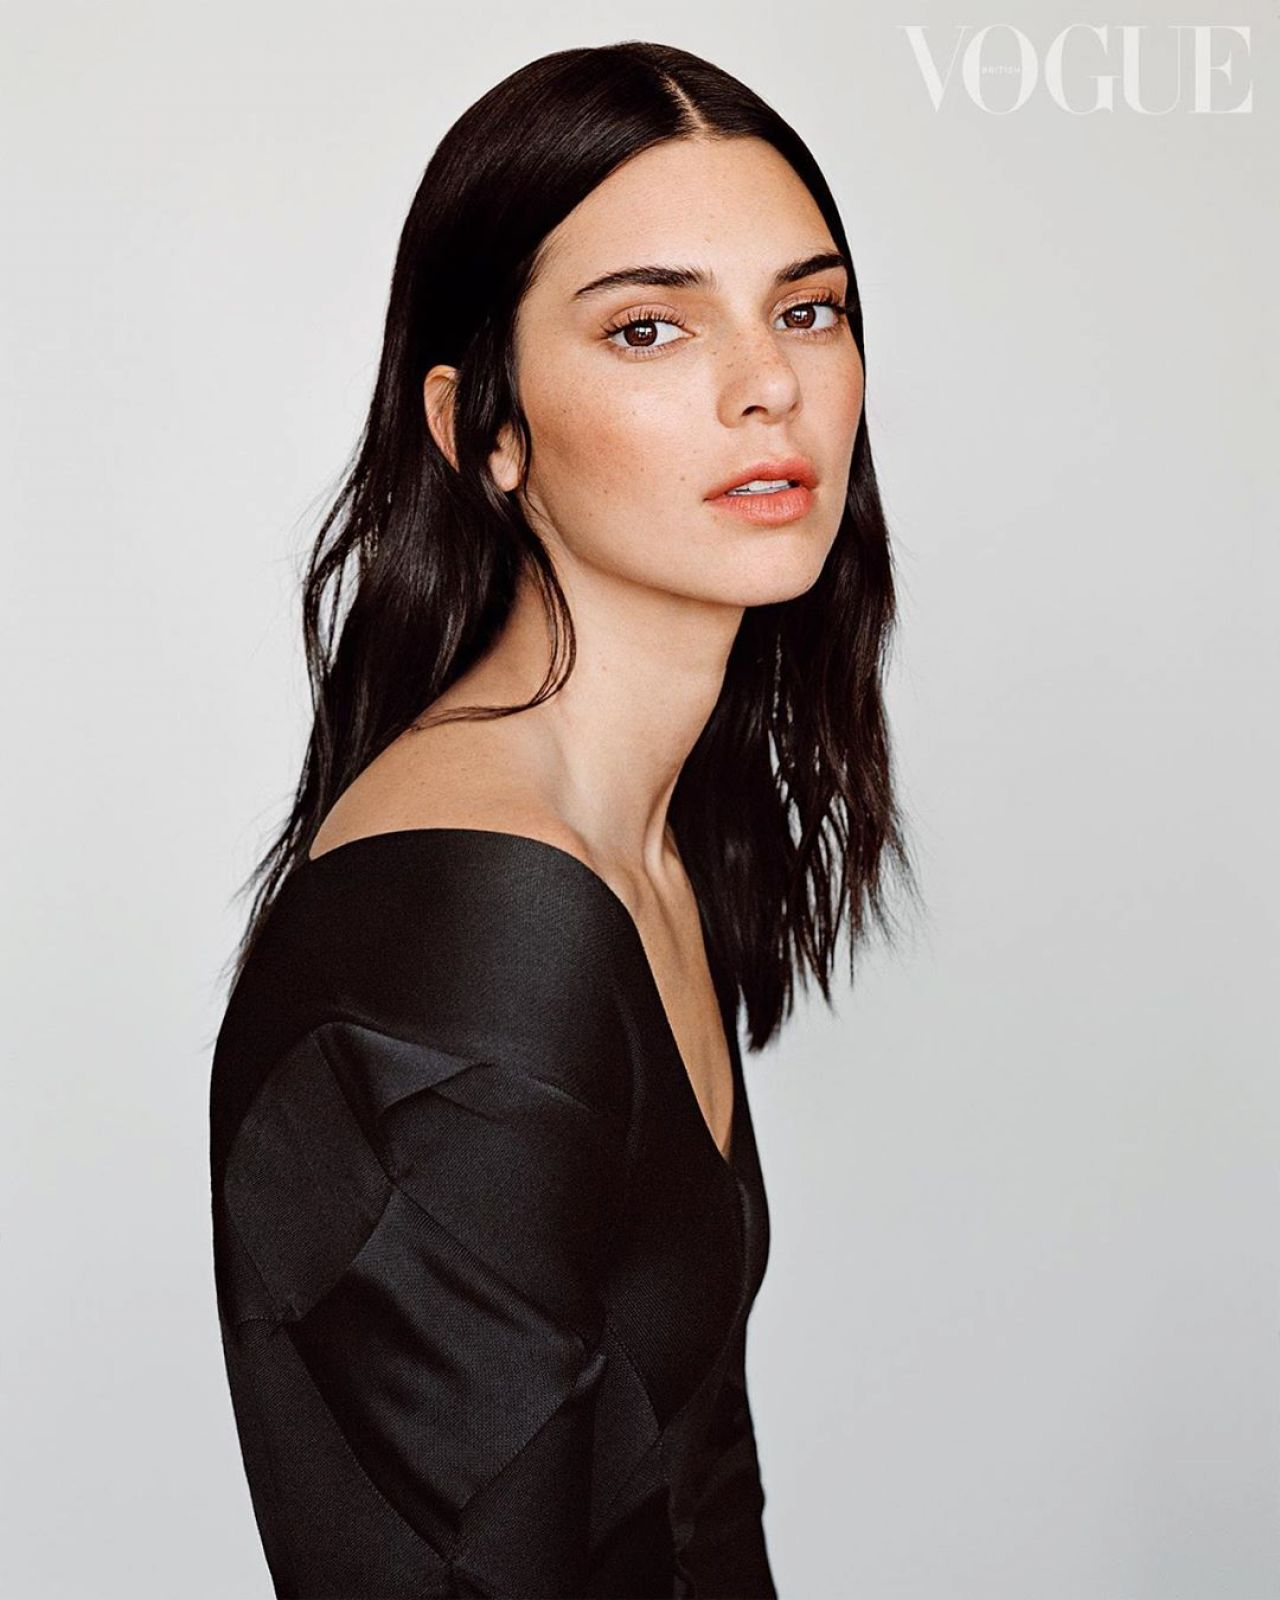 kendall-jenner-in-vogue-uk-february-2020